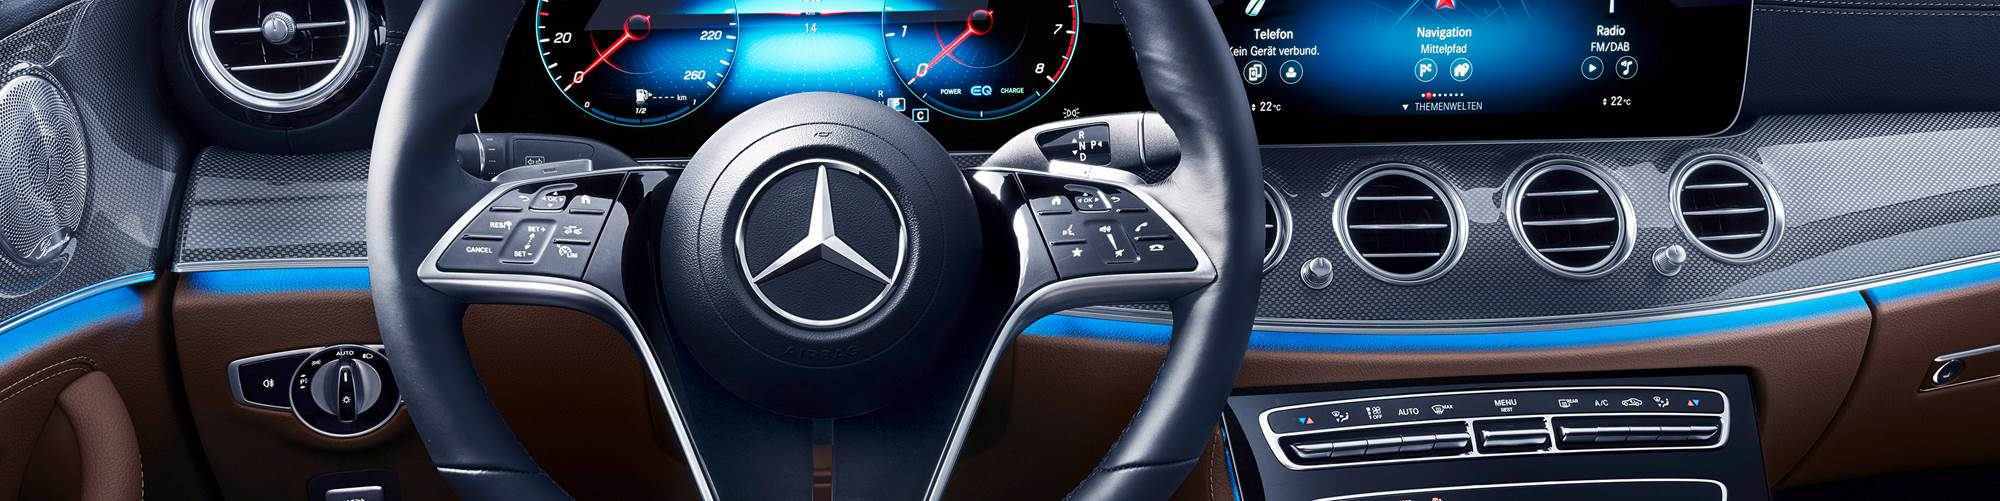 Mercedes touch sensitive steering wheel with enhanced capabilities